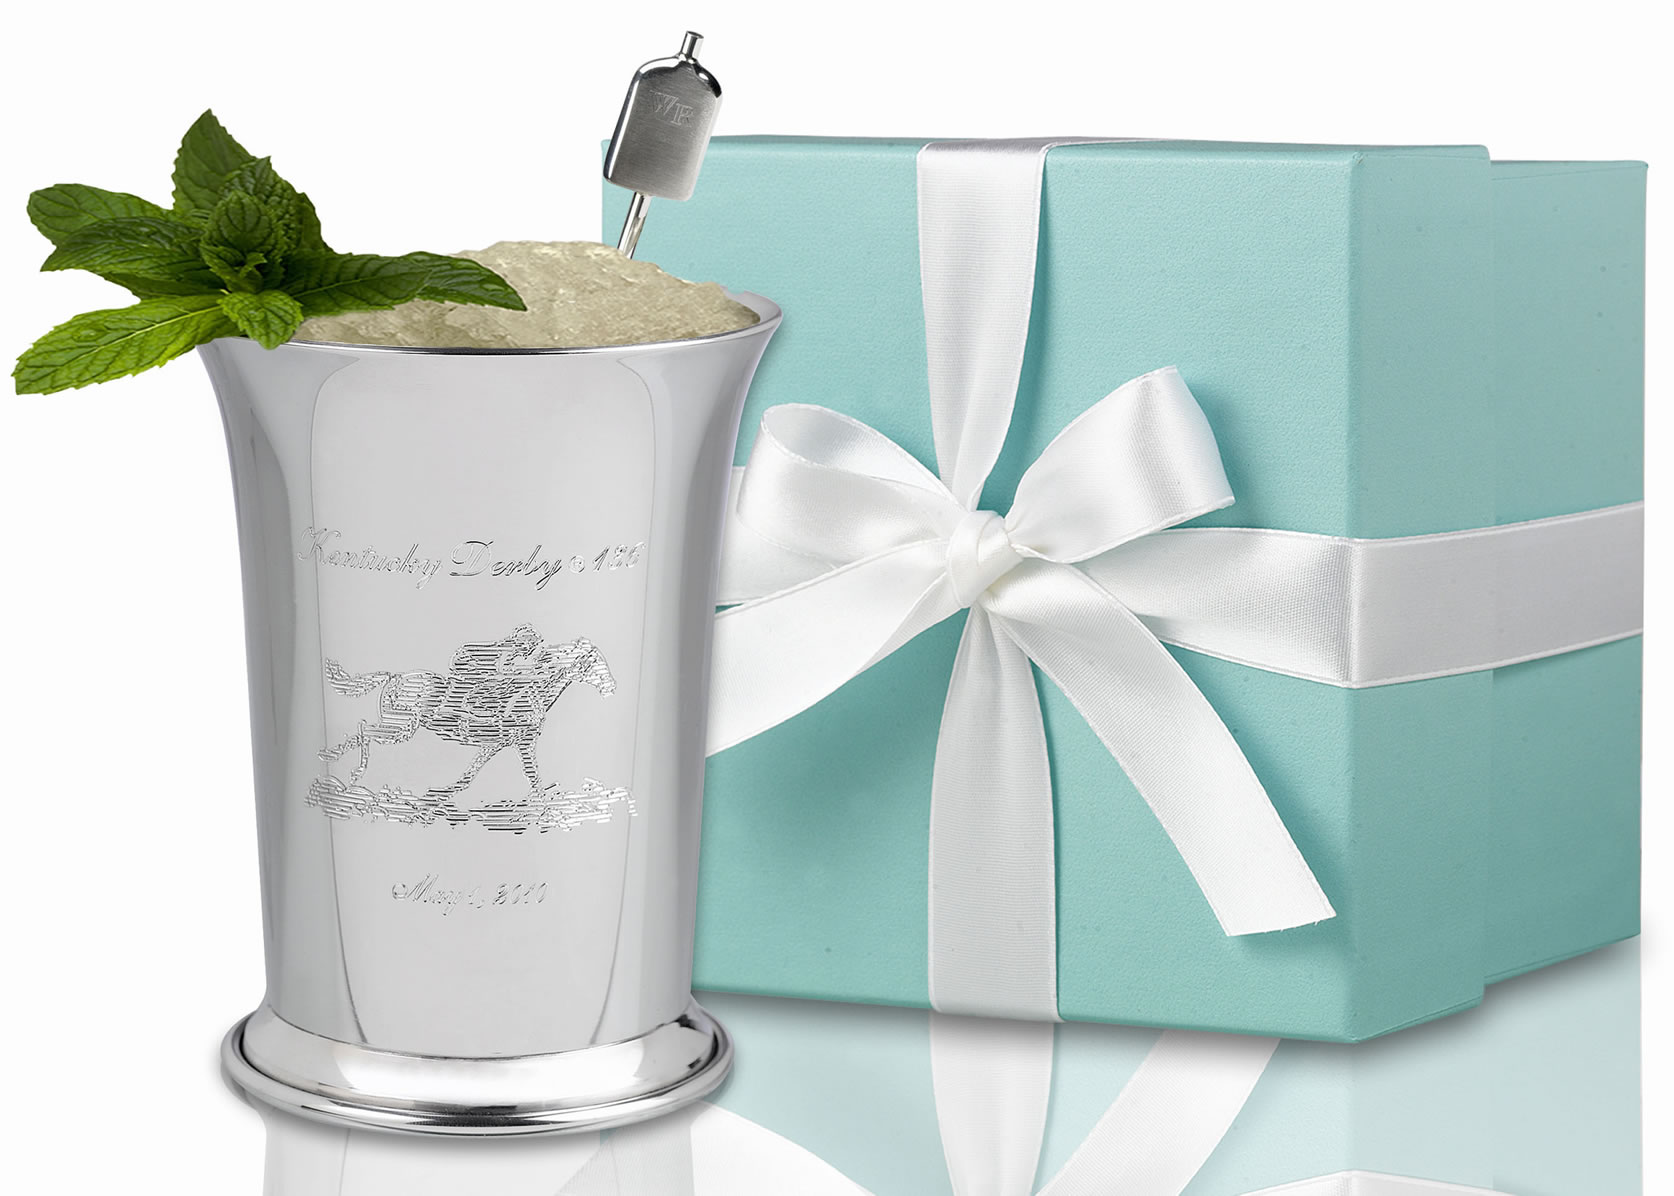 Most exclusive mint julep cup world record set by woodford reserve photo woodford reserve enlarge photo reviewsmspy